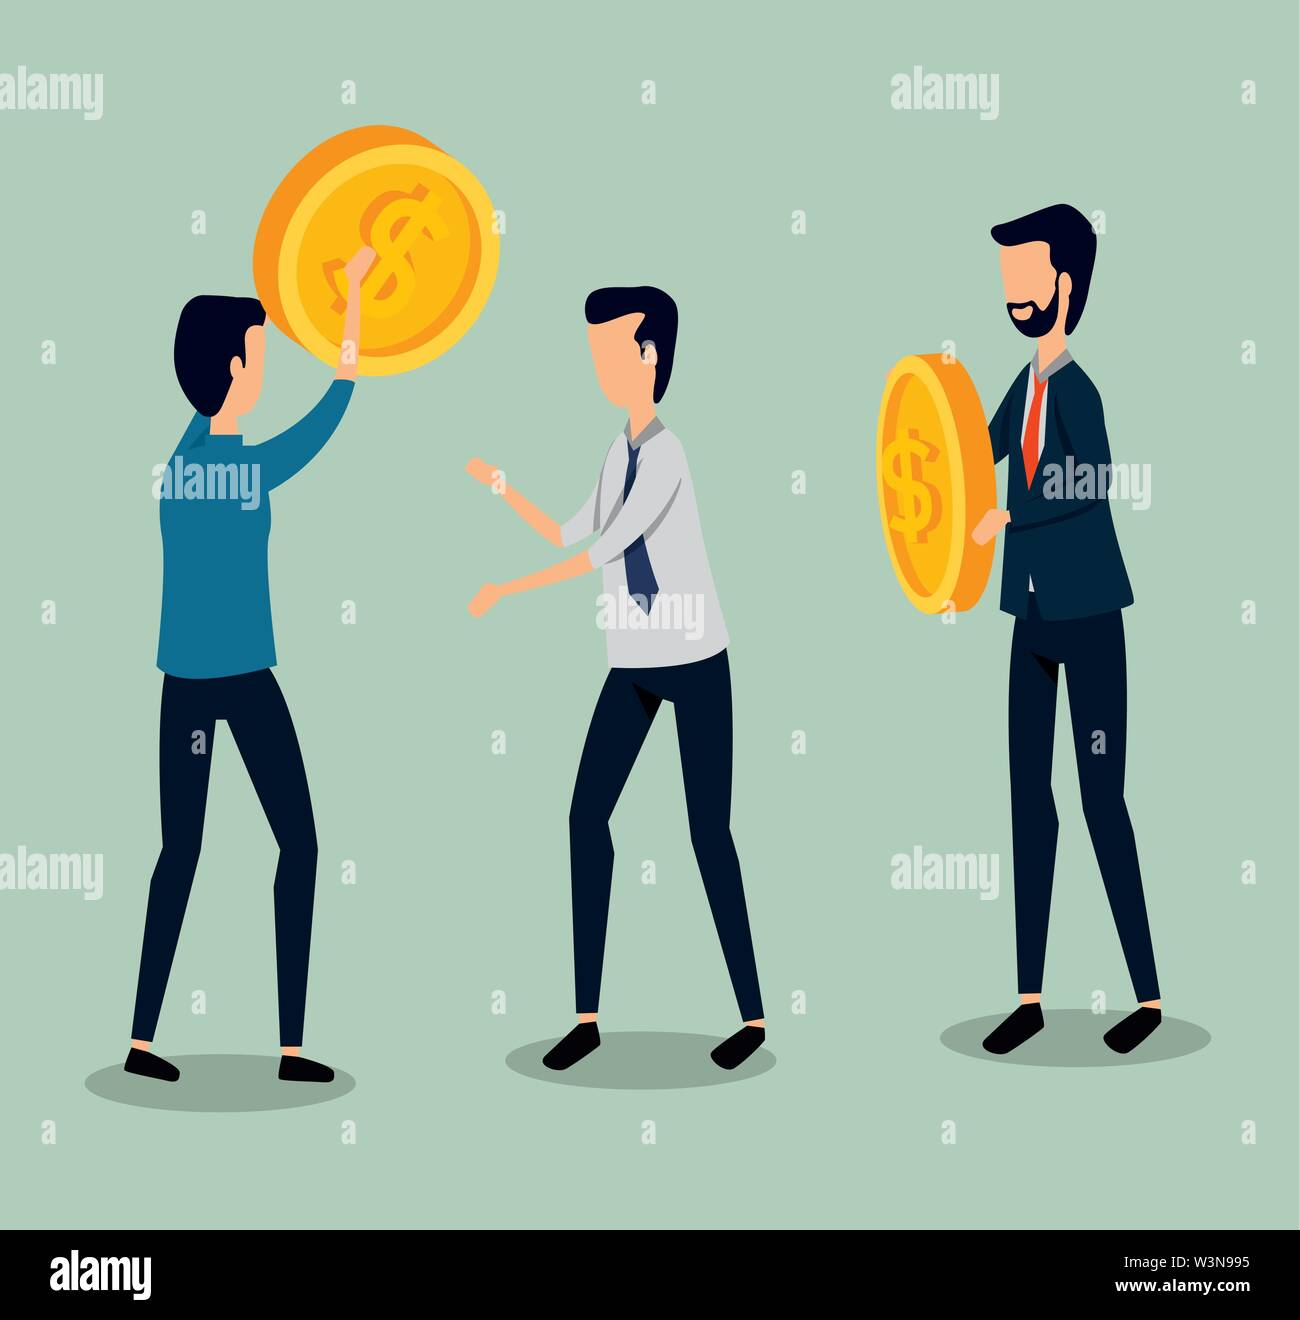 businessmen teamwork with coins and elegant clothes Stock Vector